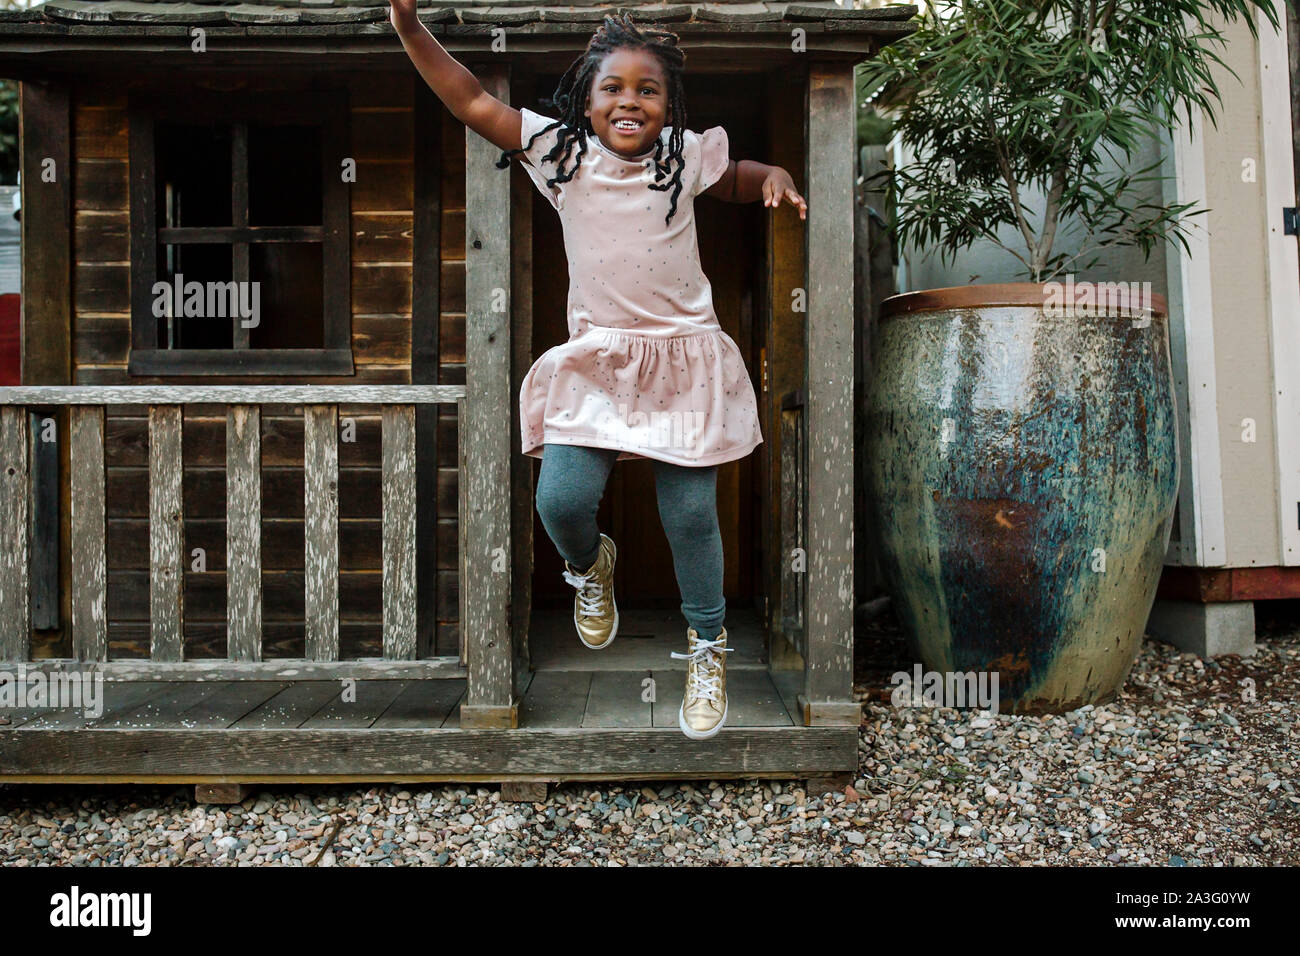 Laughing young black girl with long braids jumping from cabin porch Stock Photo